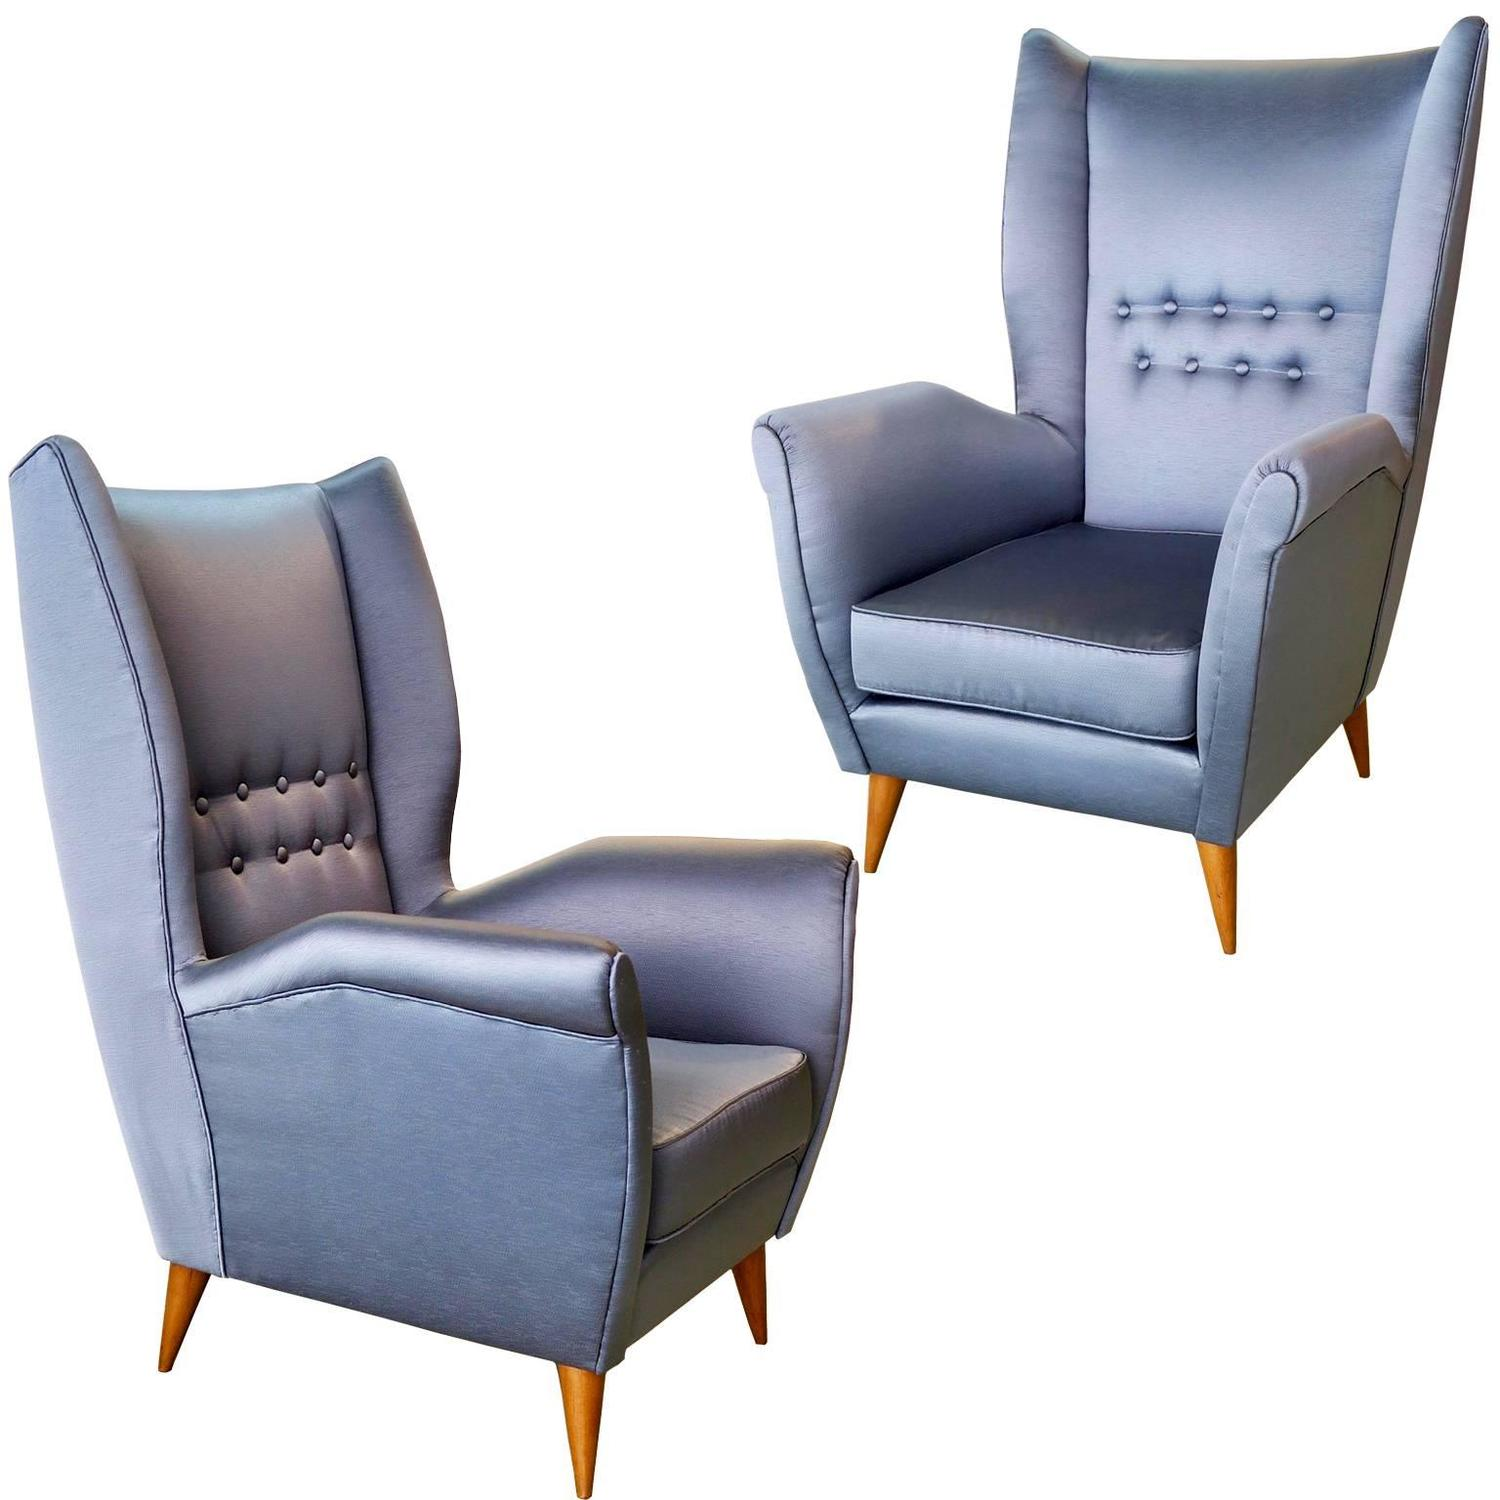 Gio Ponti Pair of Armchairs 512 For Sale at 1stdibs